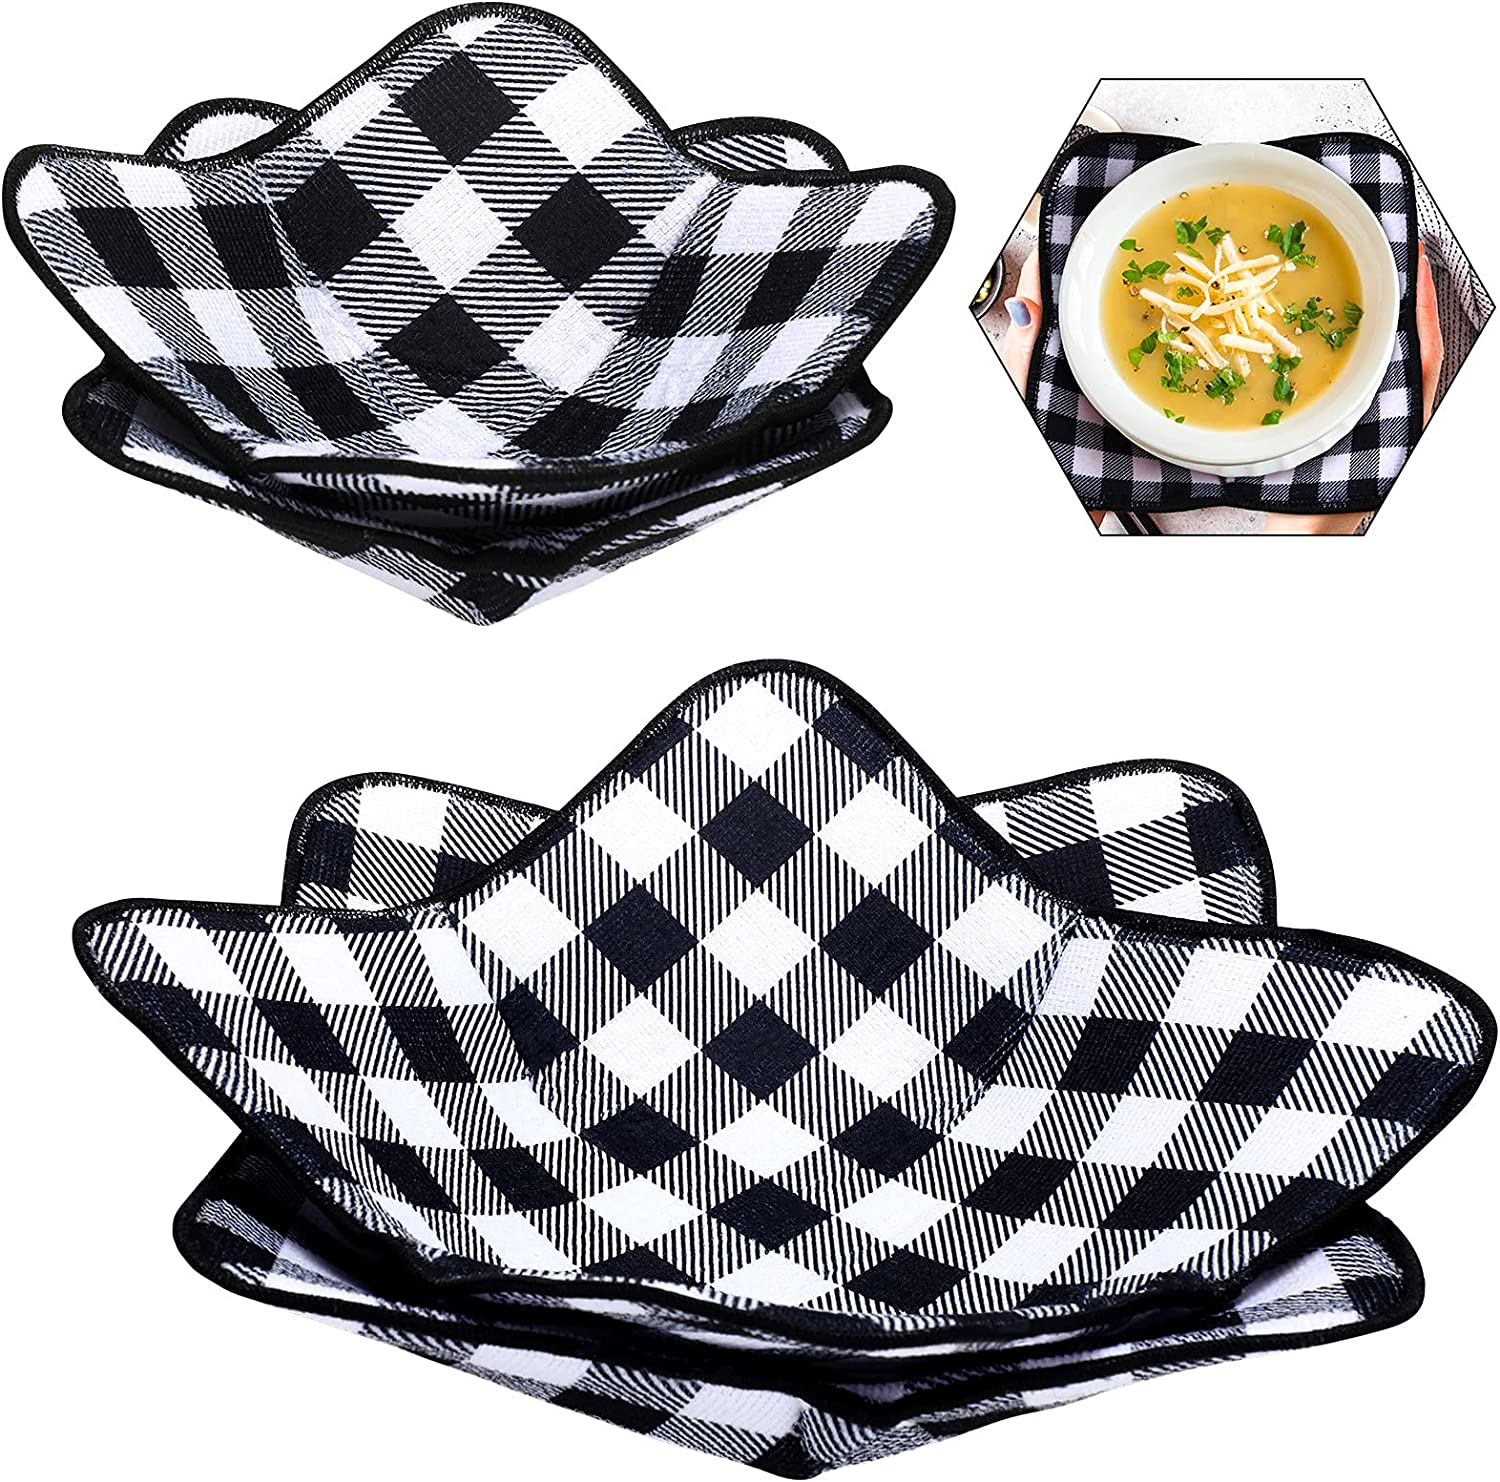 4 Pieces 2 Sizes Bowl Huggers Sponge and Microfiber Small Bowls Large Bowls Holder for Microwave Heat Plate Bowl Food Huggers Food Warmer for Home Kitchen and Hot Bowl Holder (Black and White)